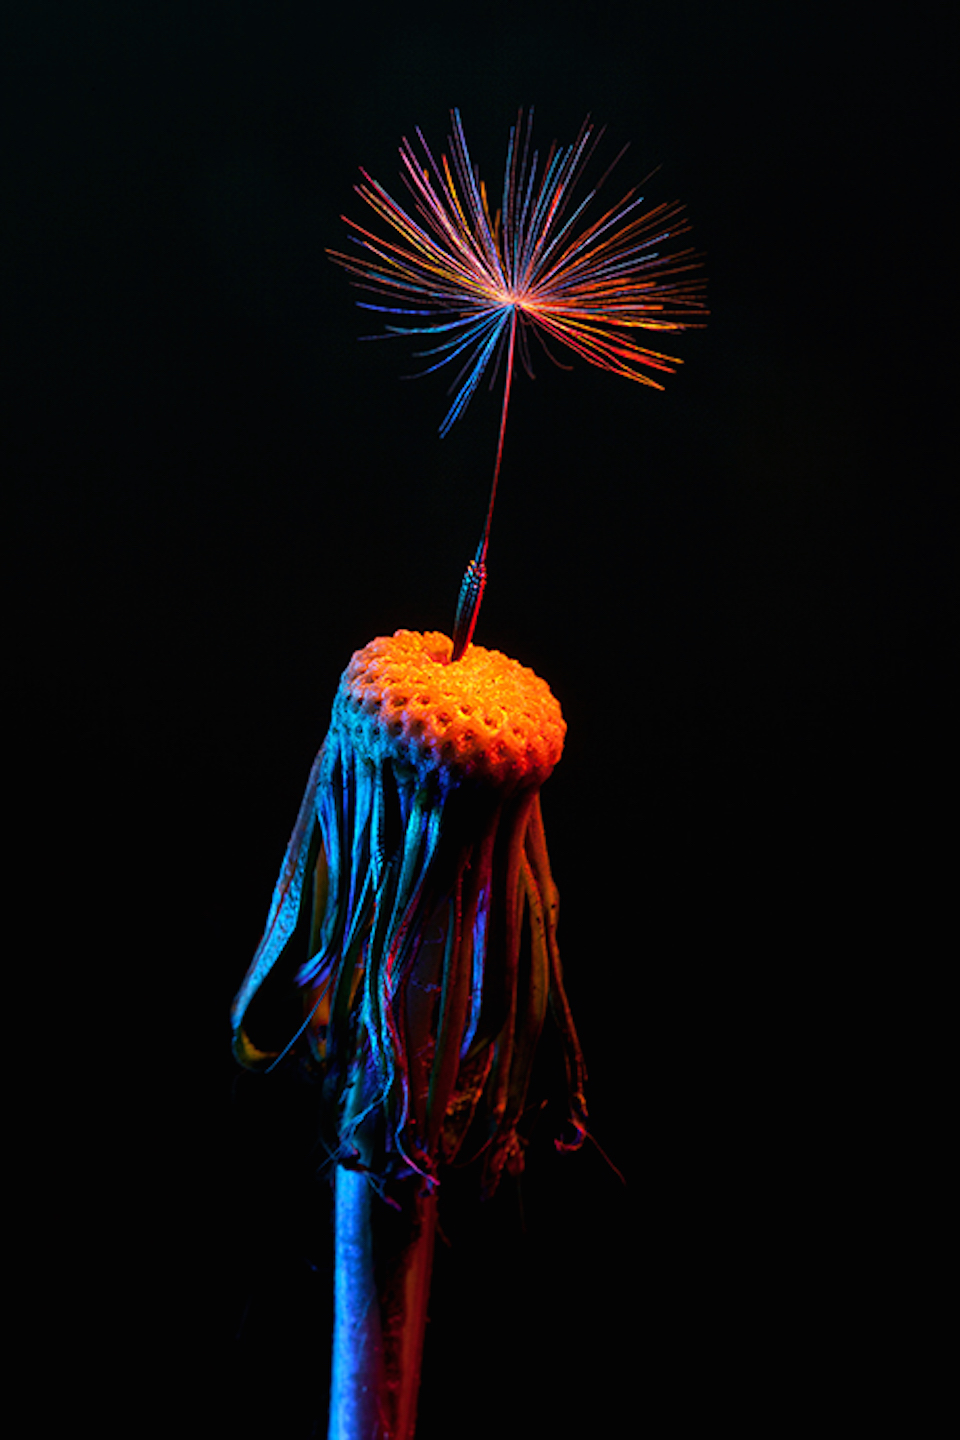 Psychedelic Photographs of Flowers